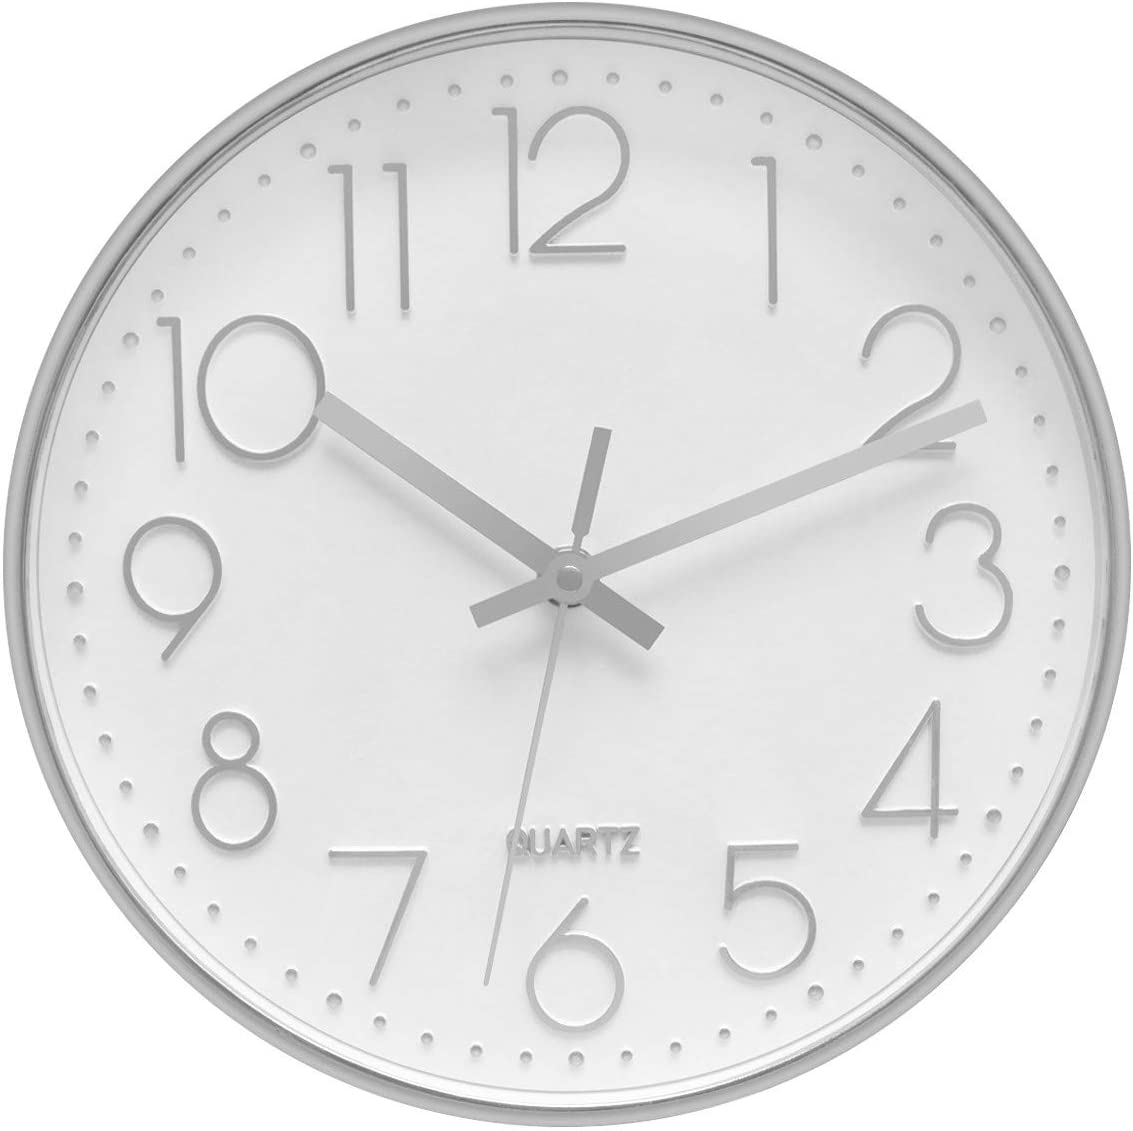 Foxtop Modern Silent Non Ticking Decorative Silver Wall Clock Battery Operated For Office School Home Living Room 12 Inch 30 Cm Amazon Co Uk Kitchen Home